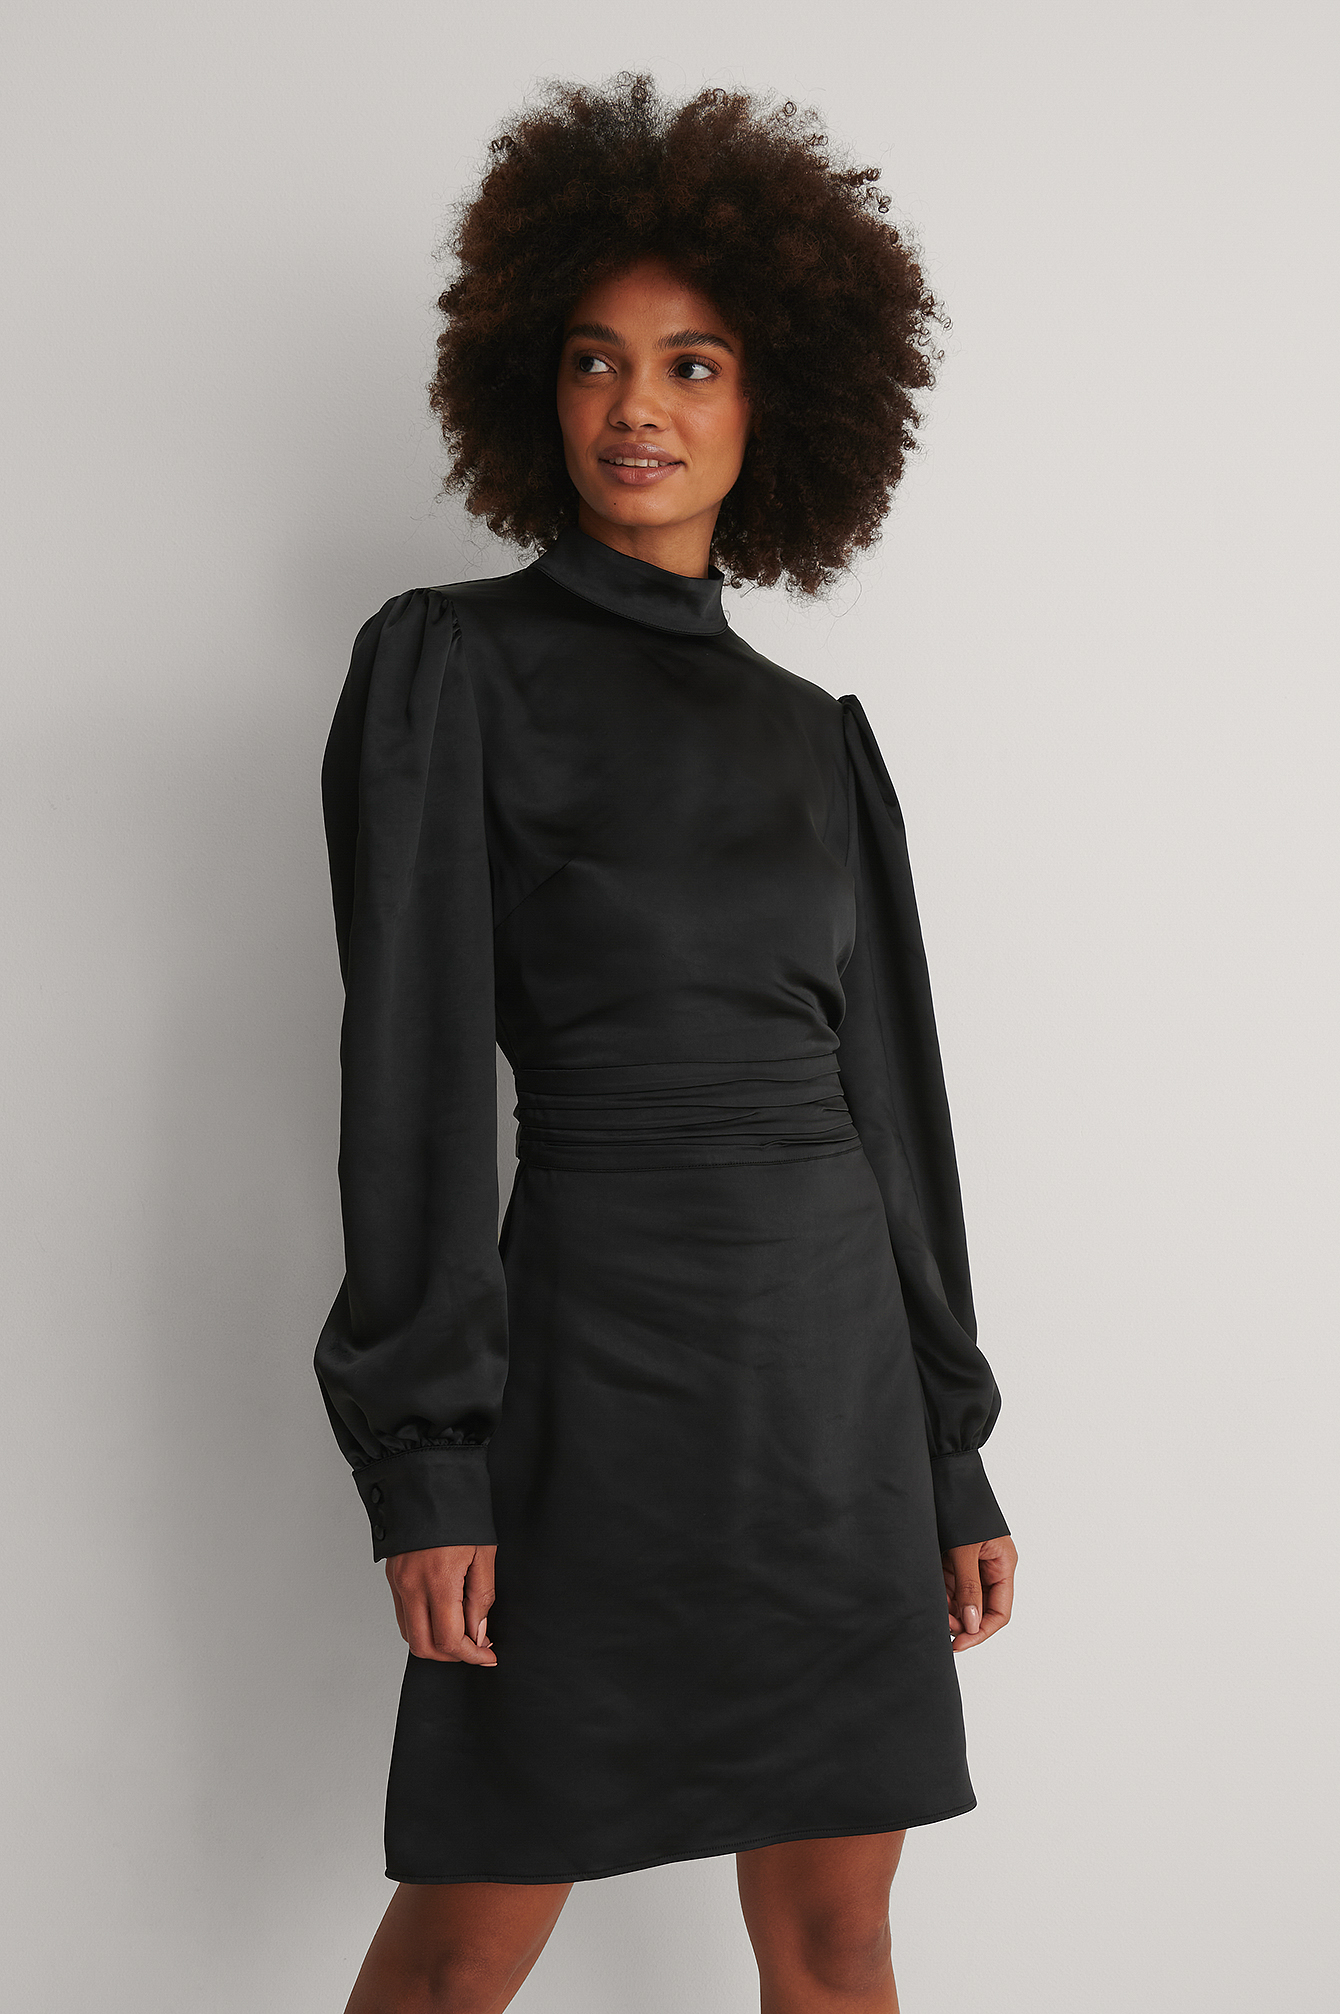 Black High Neck Satin Dress